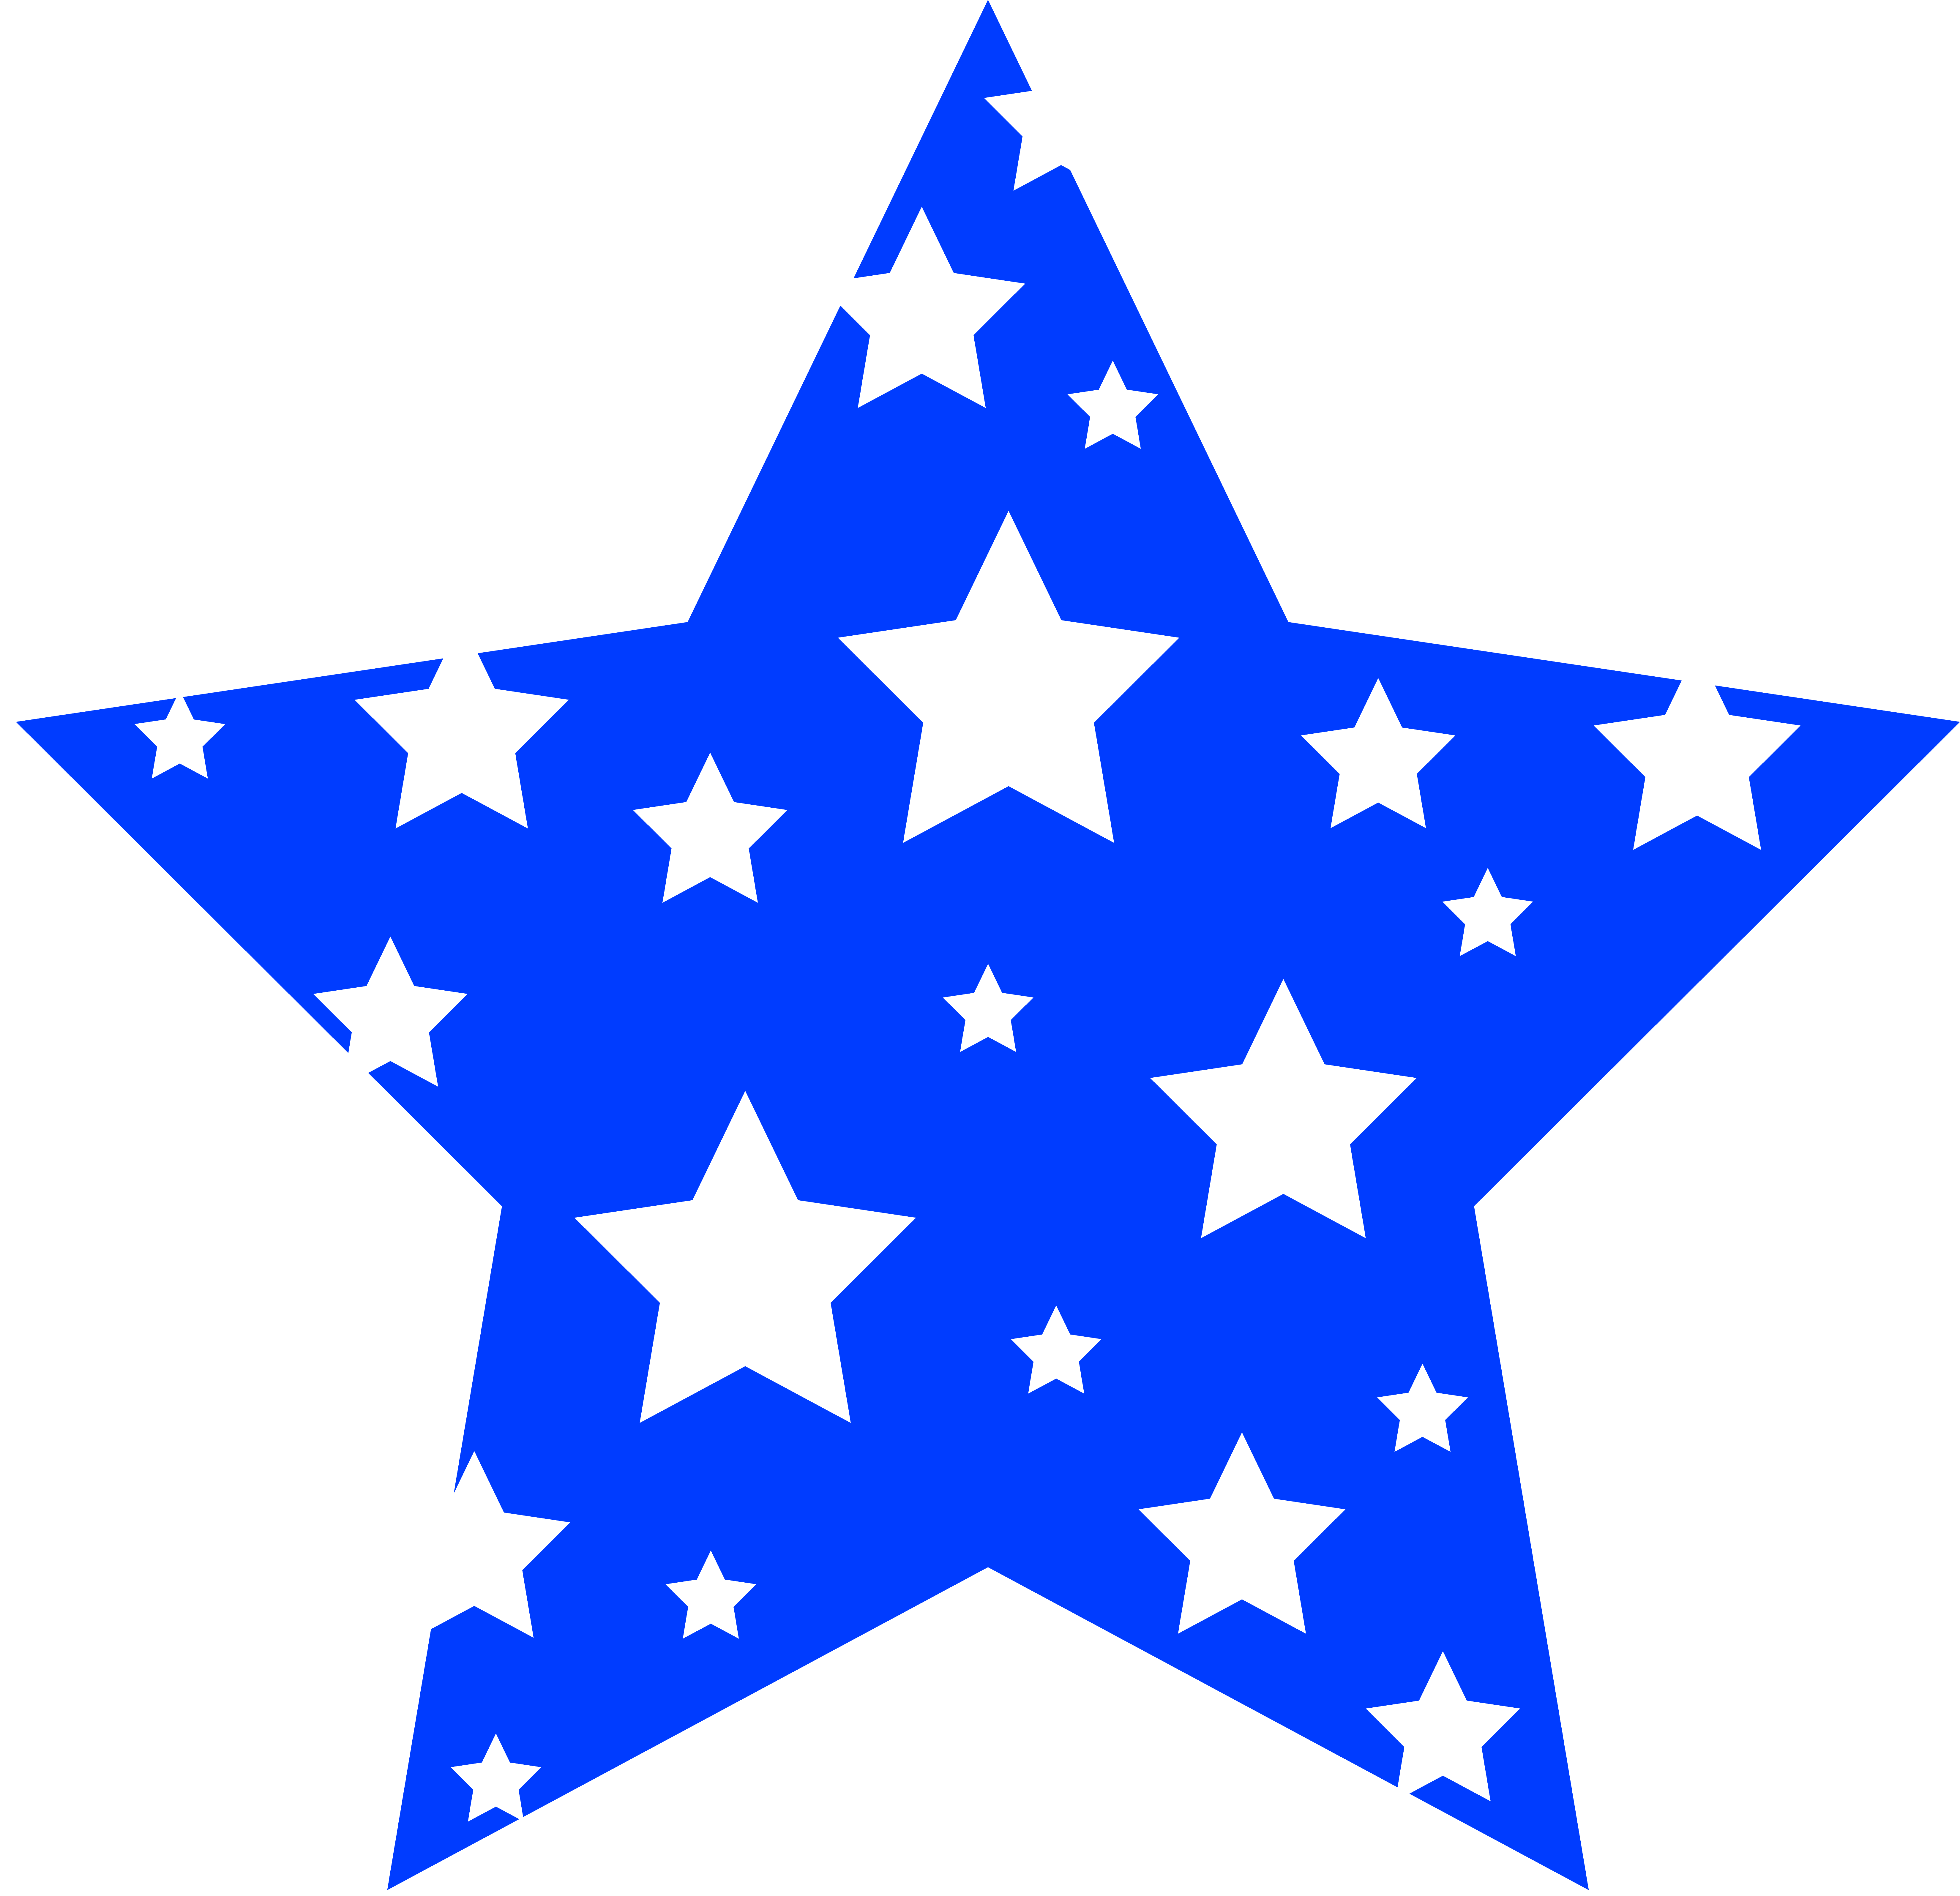 Blue star of bethlehem clipart clip art royalty free library 4th_july_new_year_star_blue | Mon noel | Pinterest | Noel and ... clip art royalty free library